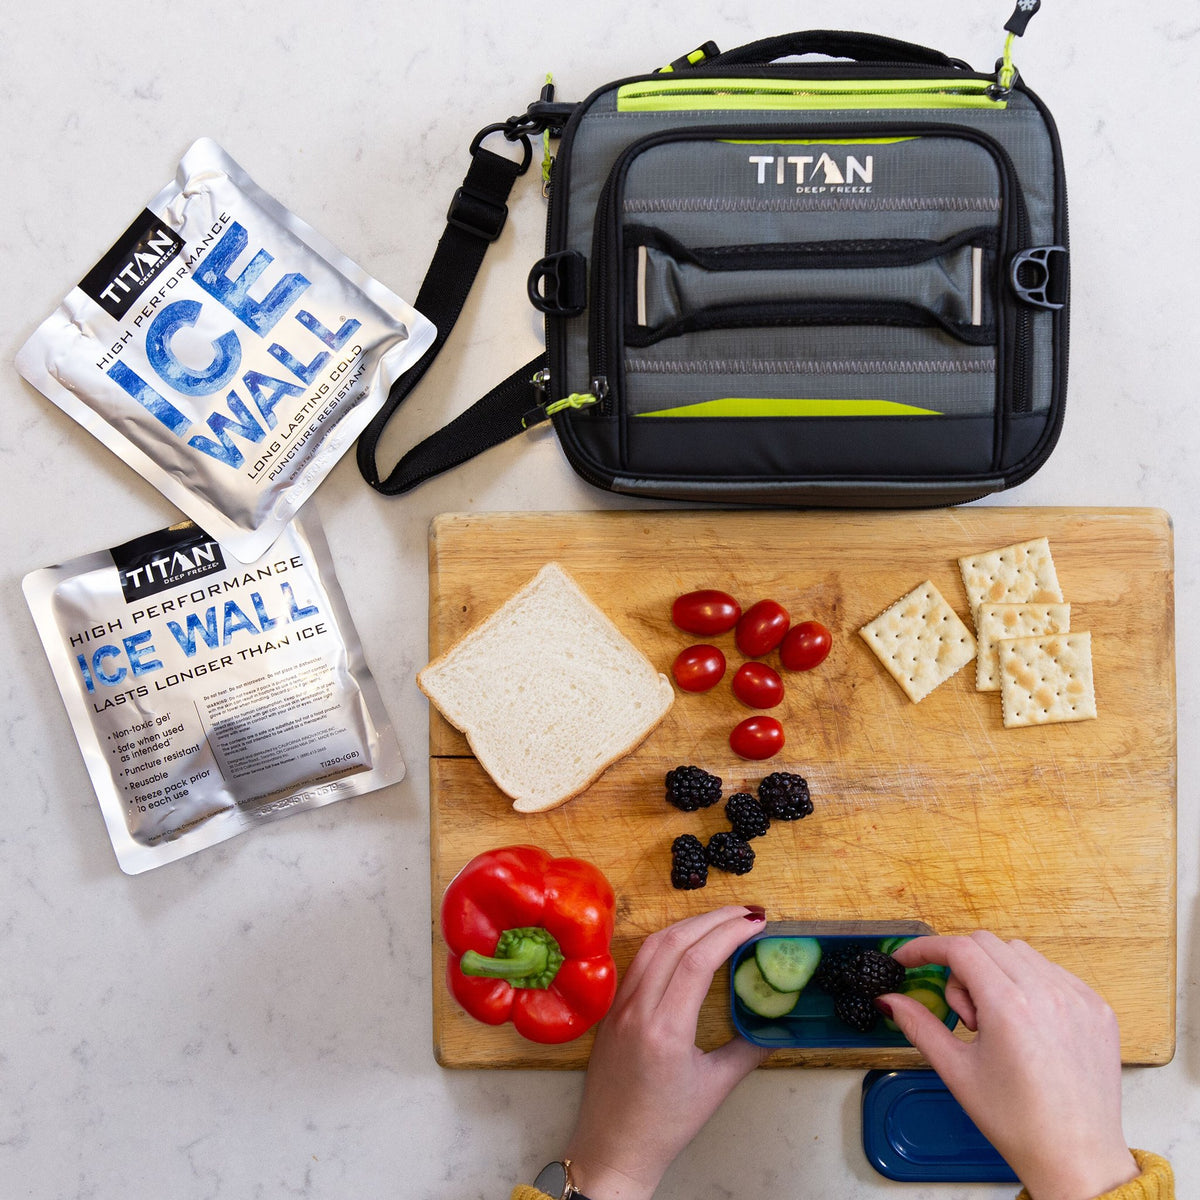 Titan Deep Freeze® High Performance Expandable Horizontal Lunch Pack - Grey - Lifestyle, meal prepping at home